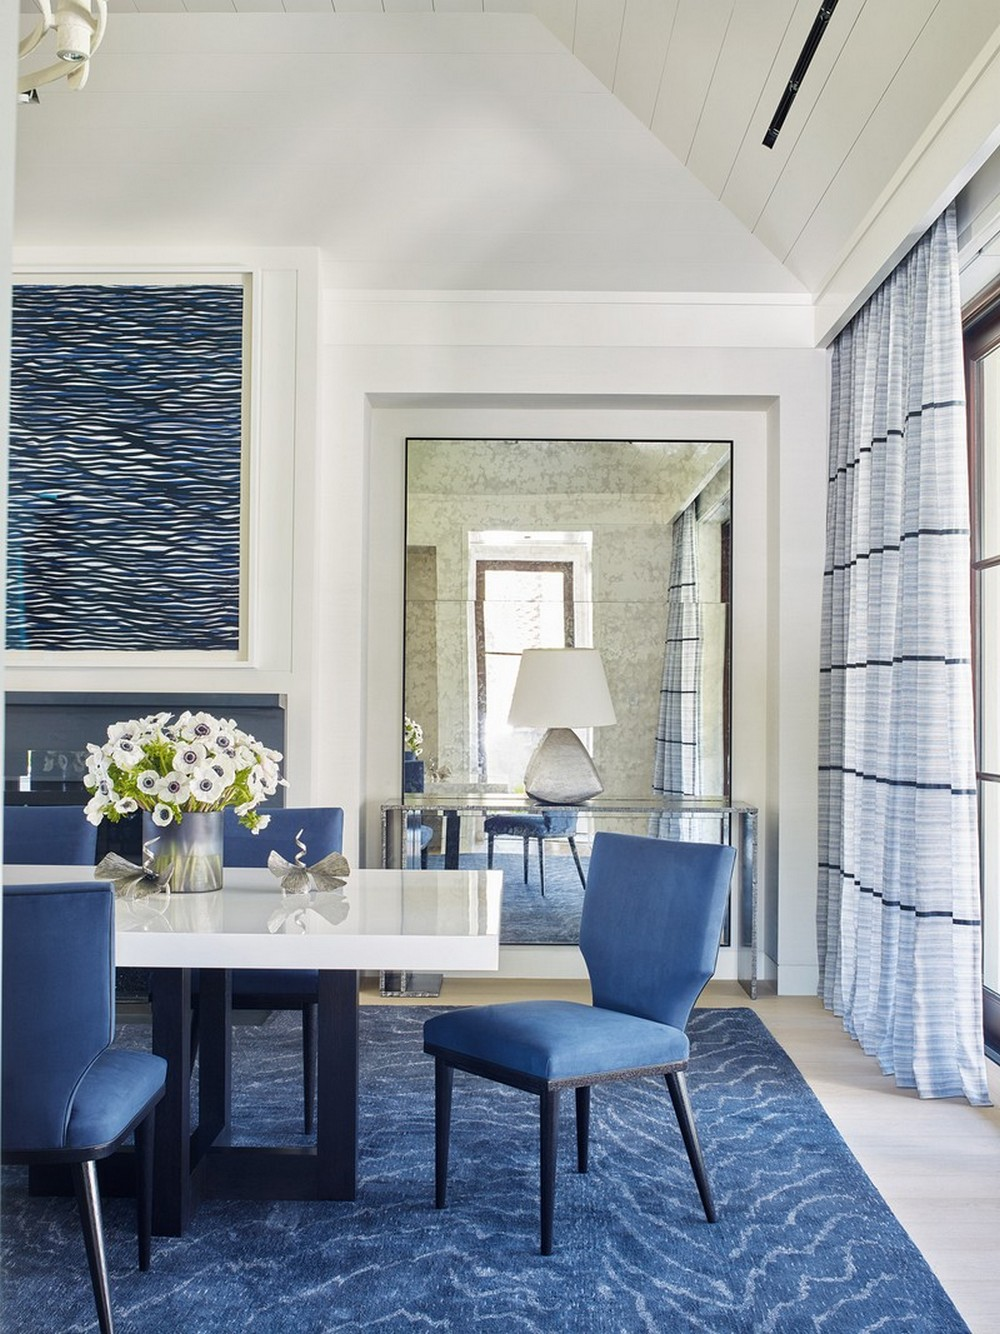 Best Interior Designers: See Who's In This Year's Top 100 (Part II) best interior designers Best Interior Designers: See Who's In This Year's Top 100 (Part II) Best Interior Designers See Whos In This Years Top 100 Part II 41